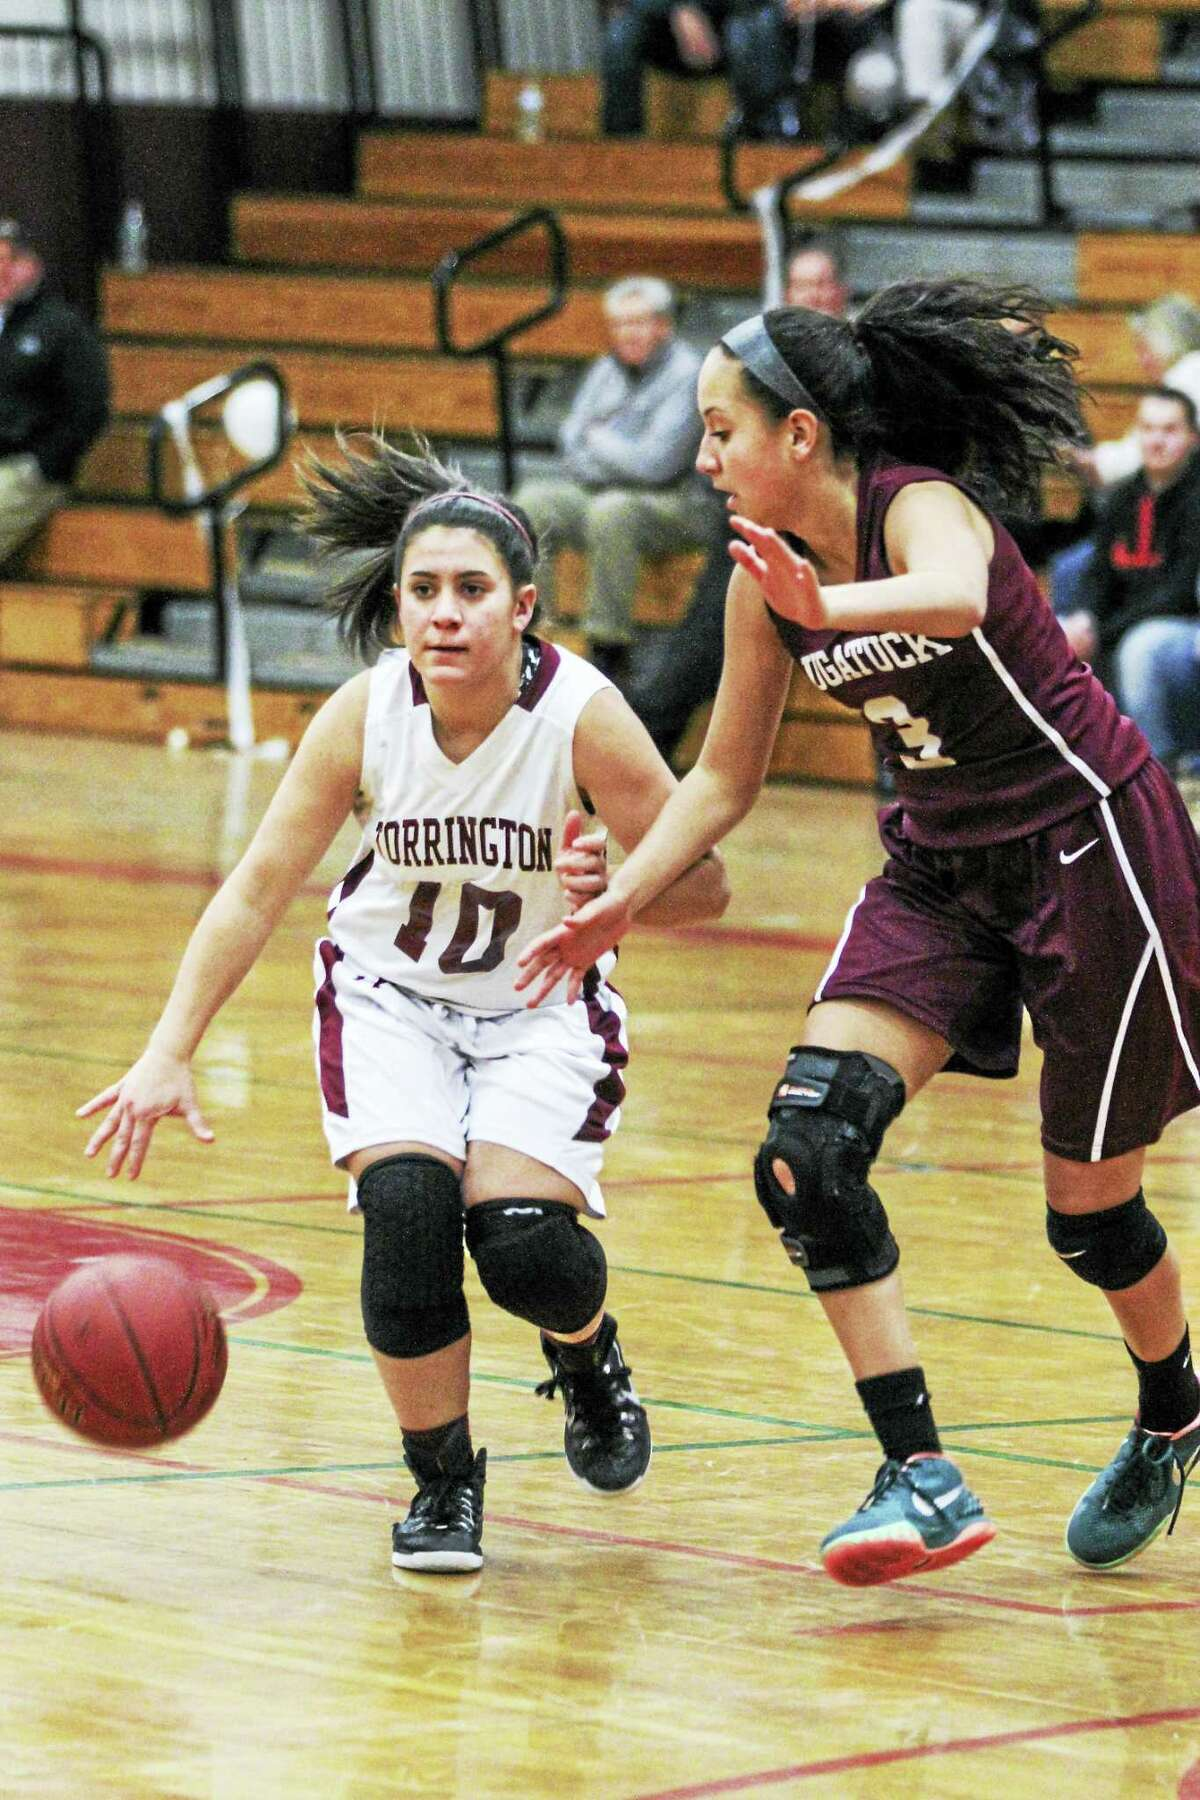 Alexis Tyrrell, guarded here by Naugatuck's Alyana Sosa, had a game-high 14 points for Torrington Tuesday night.